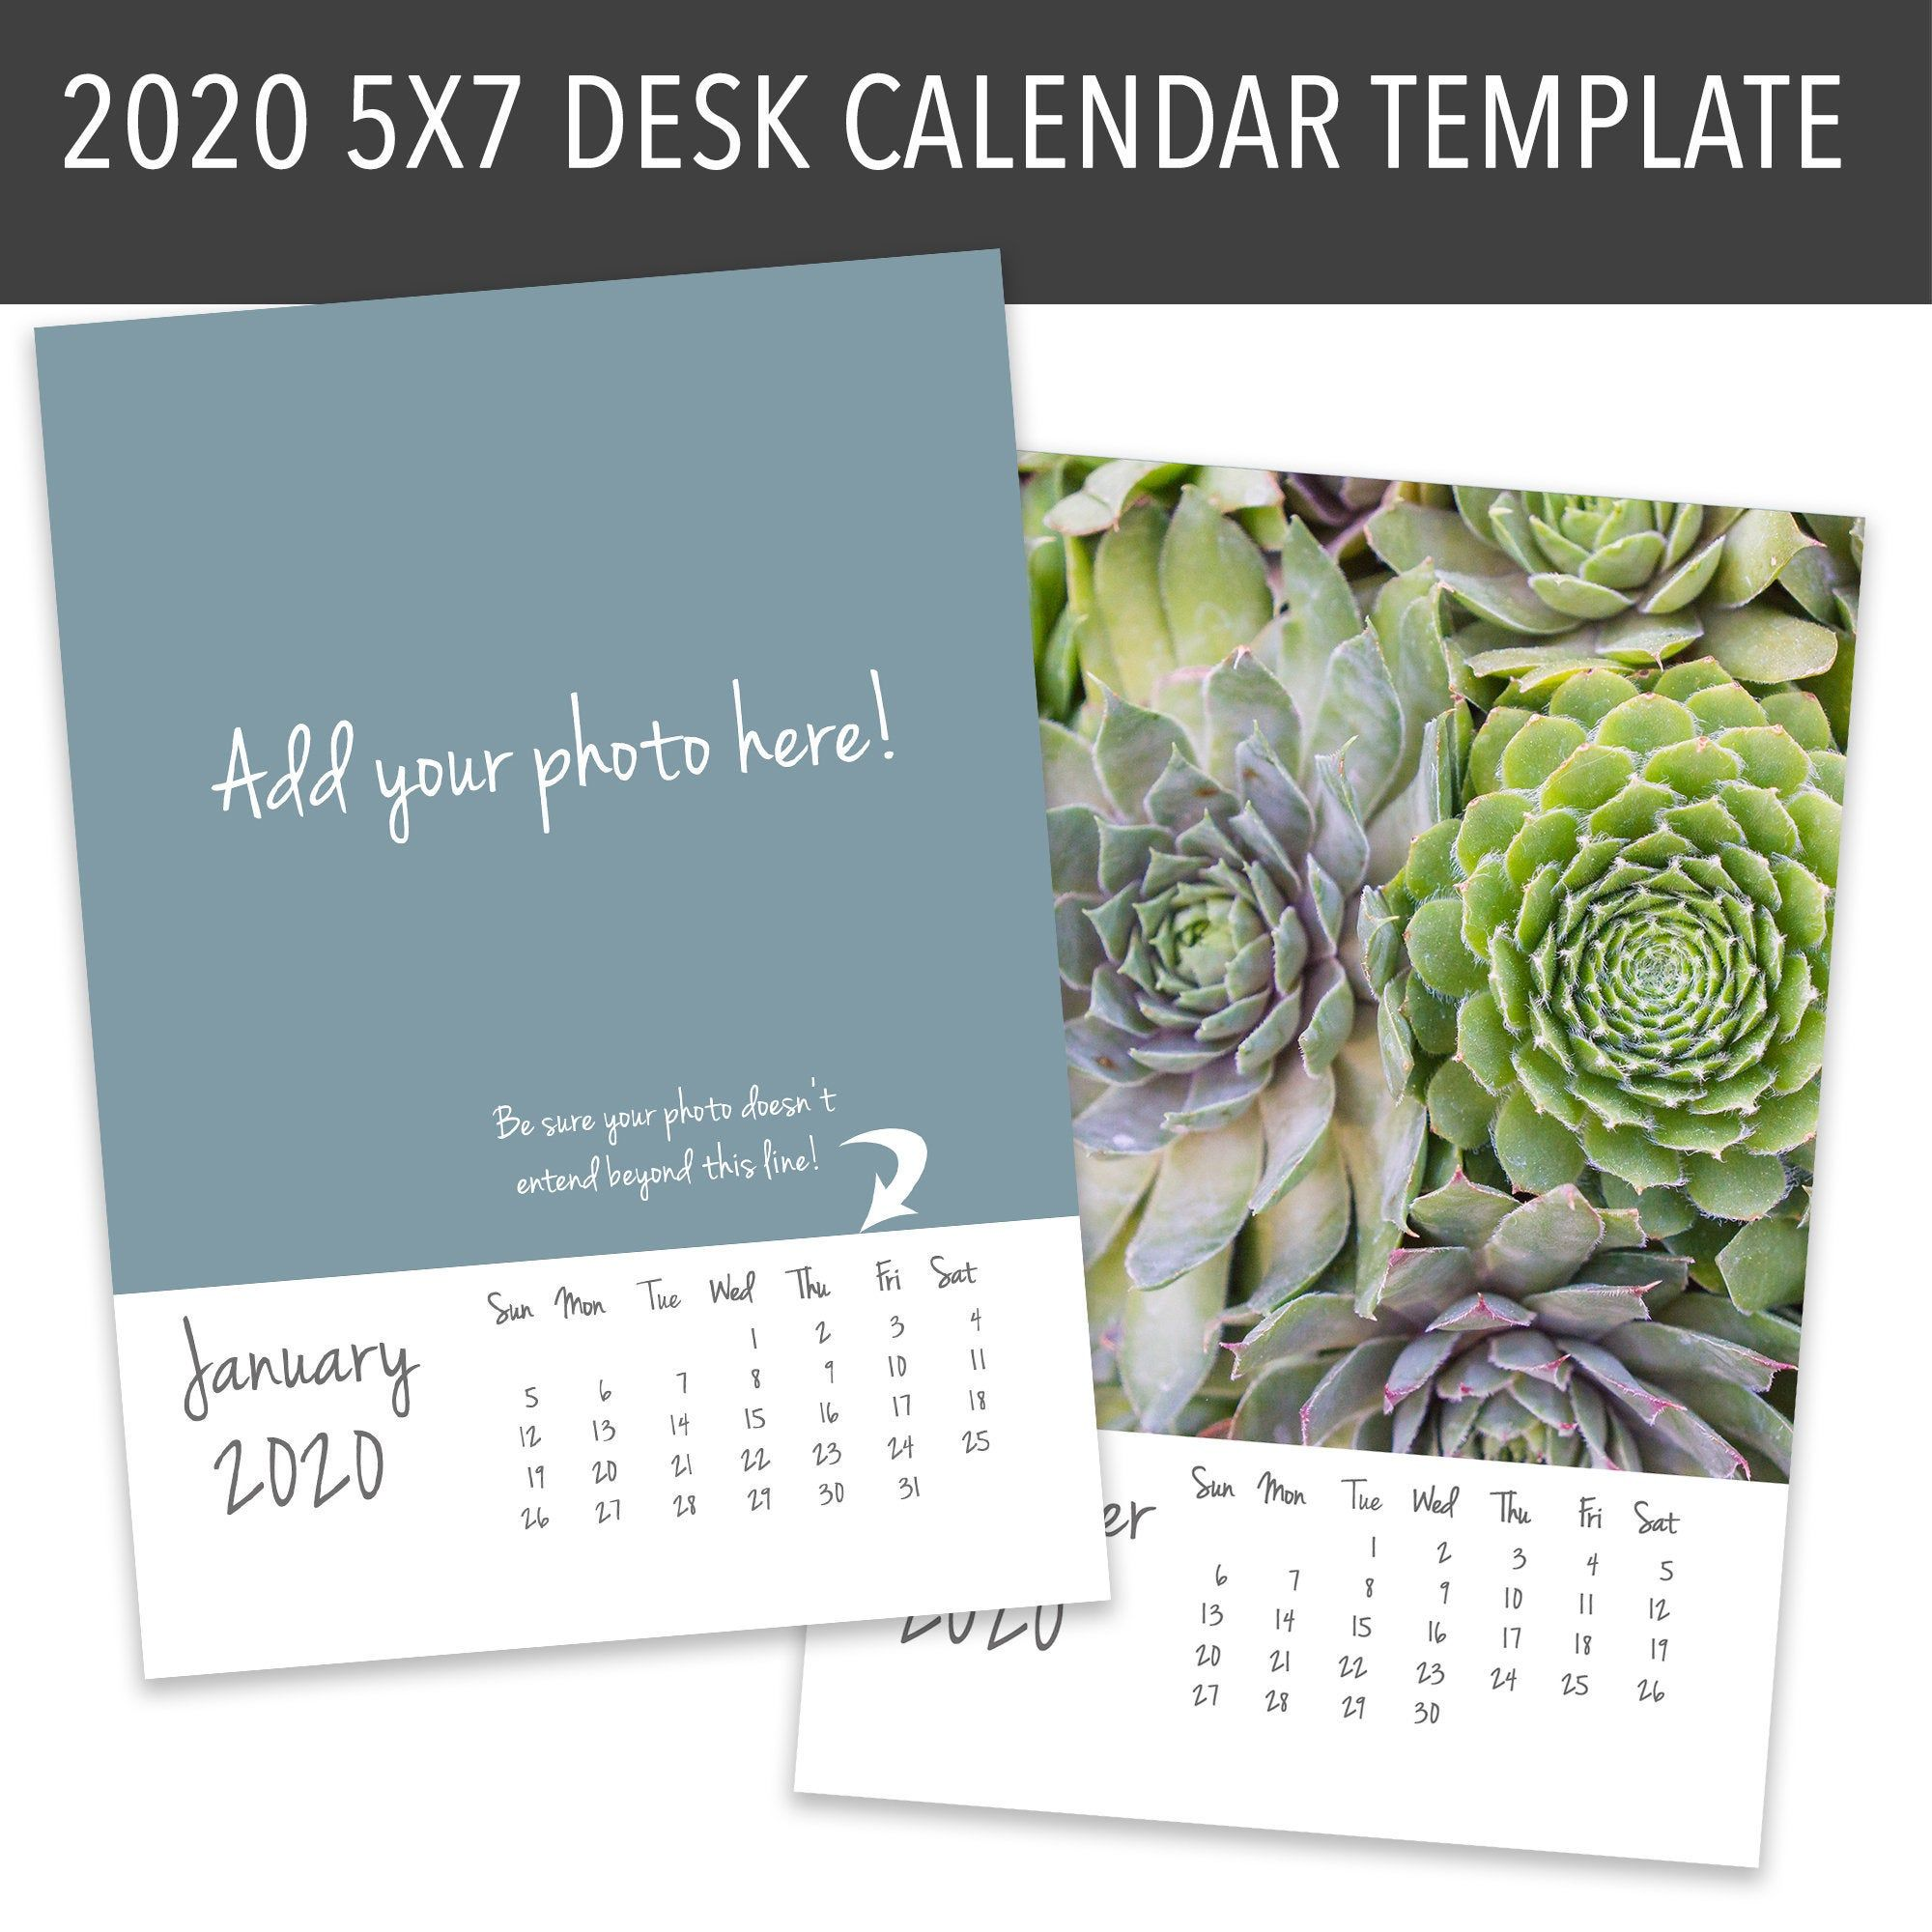 5x7 2020 Desk Calendar Template Instant Download Diy Personalized Calendar Downloadable Calendar Pr Diy Desk Calendar Desk Calendar Template Desk Calendars